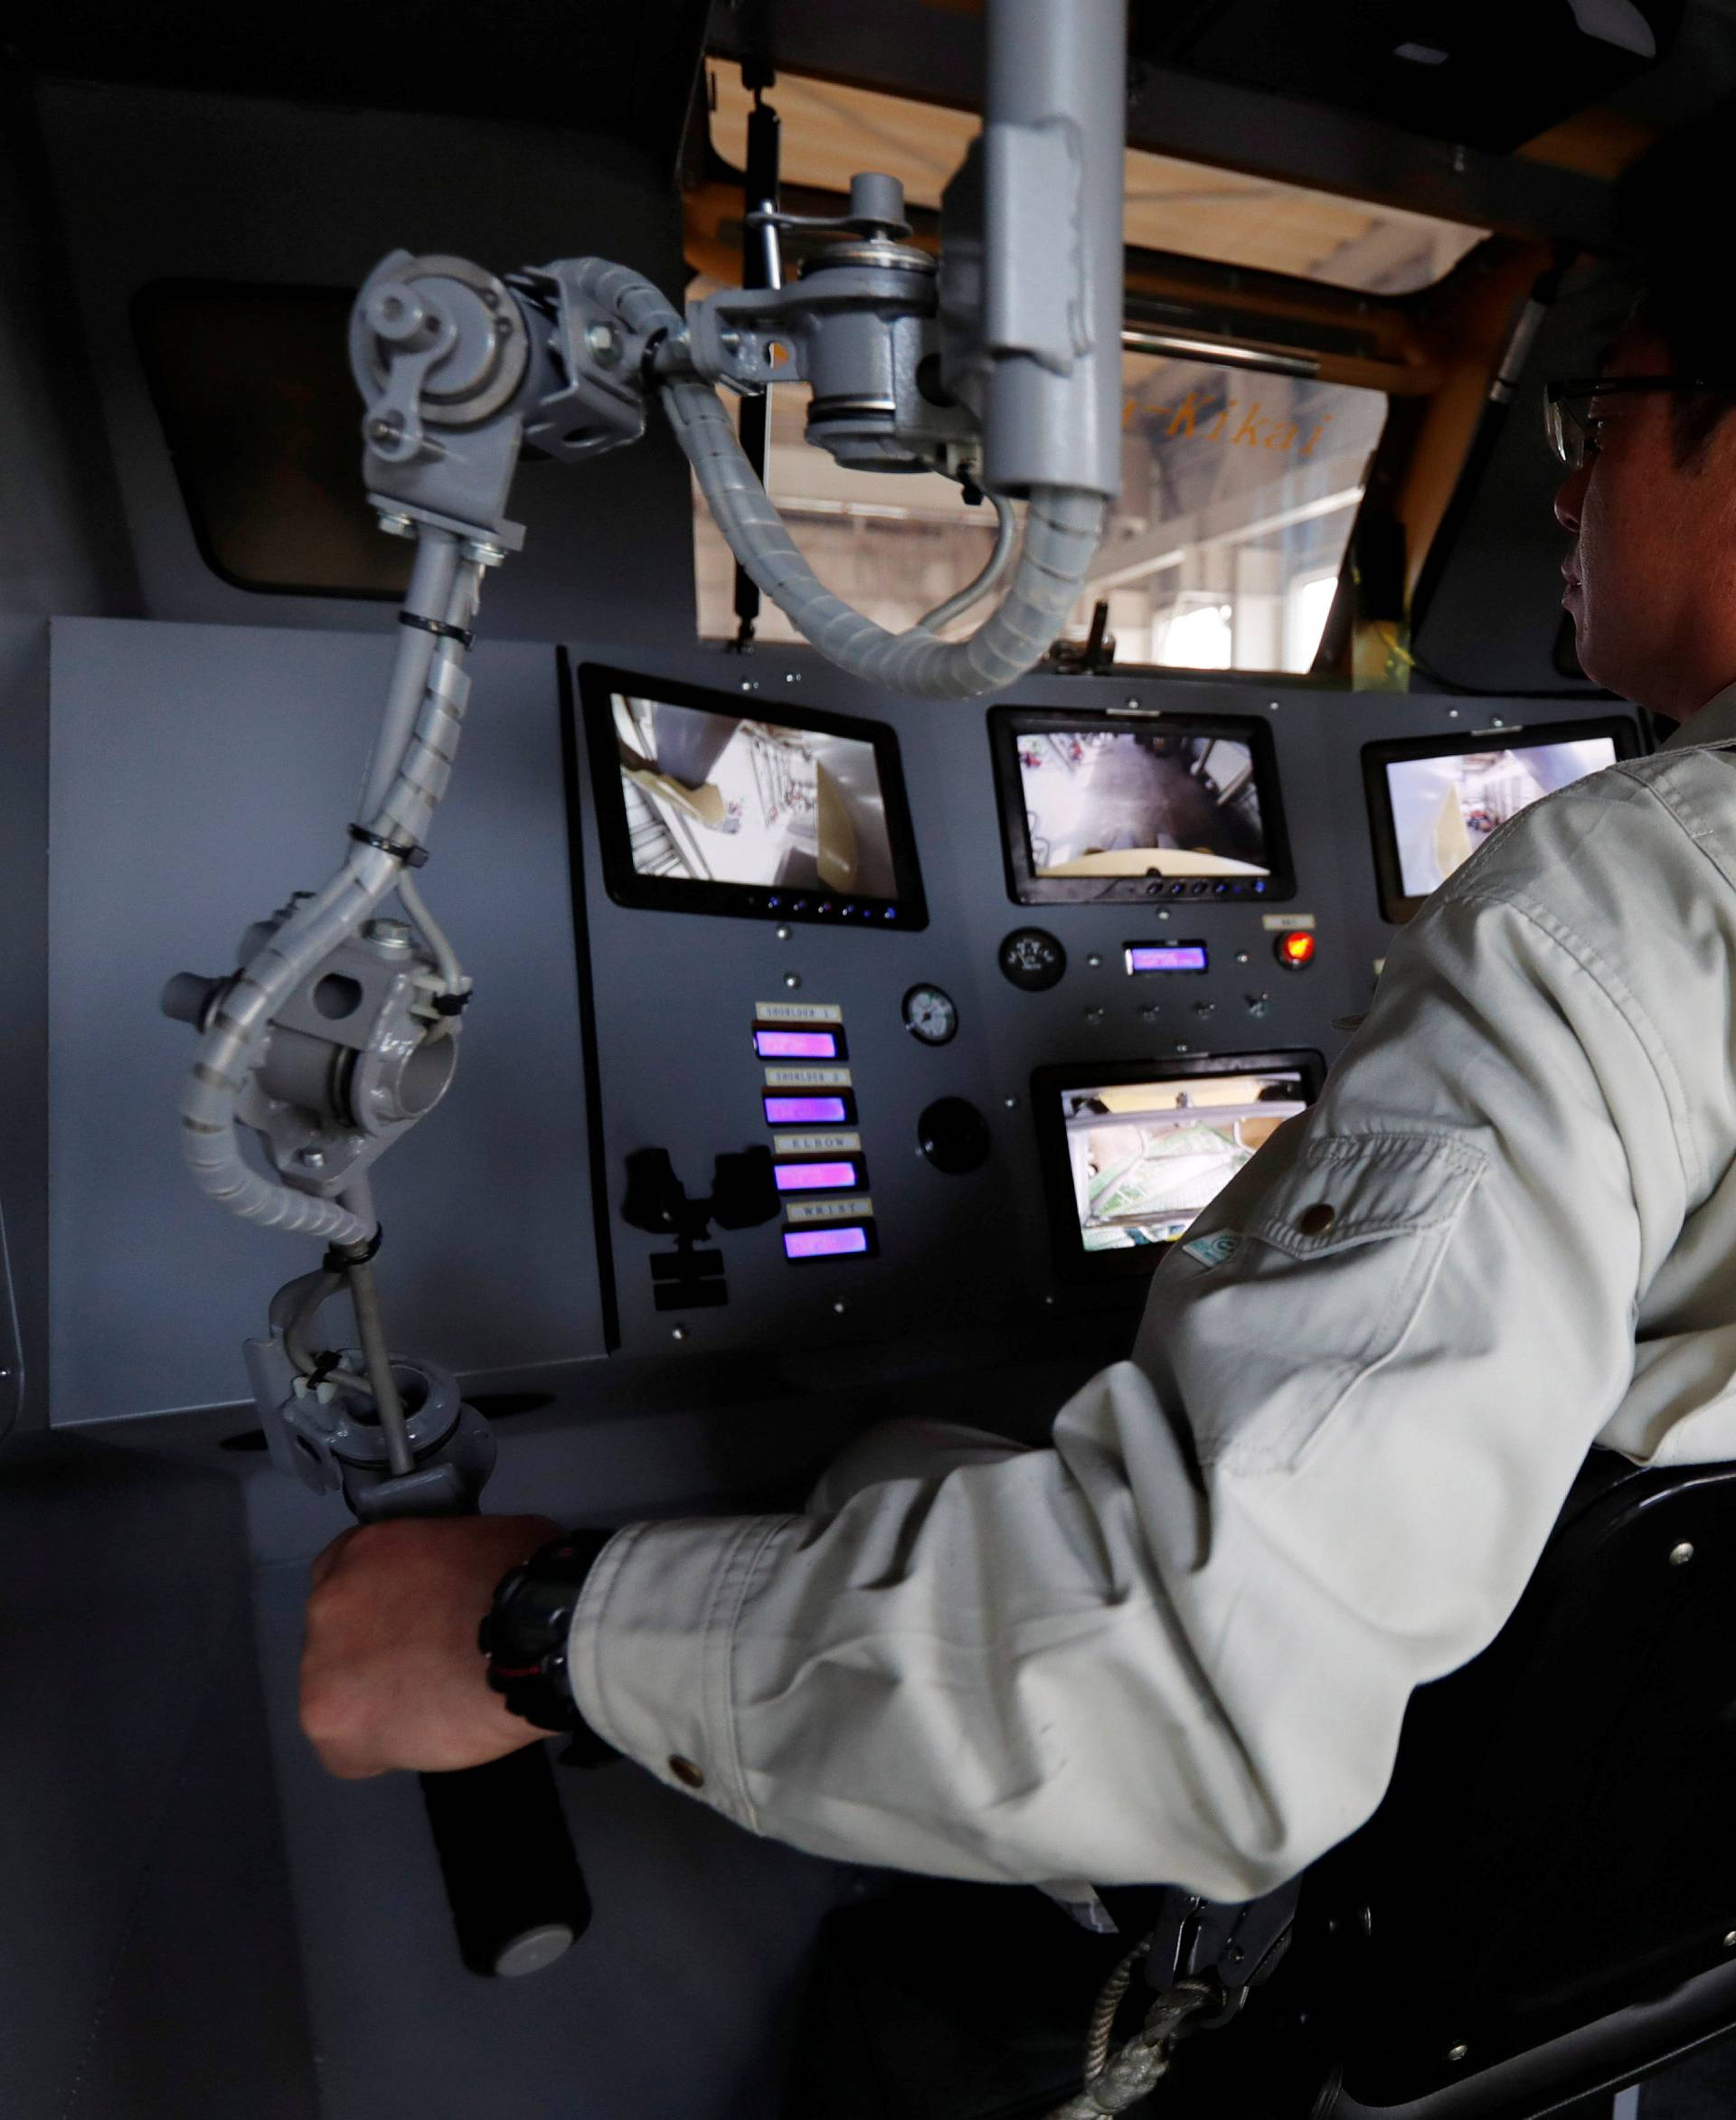 Sakakibara Kikai's engineer Masaaki Nagumo controls the bipedal robot Mononofu from its cockpit during its demonstration at its factory in Shinto Village, Gunma Prefecture